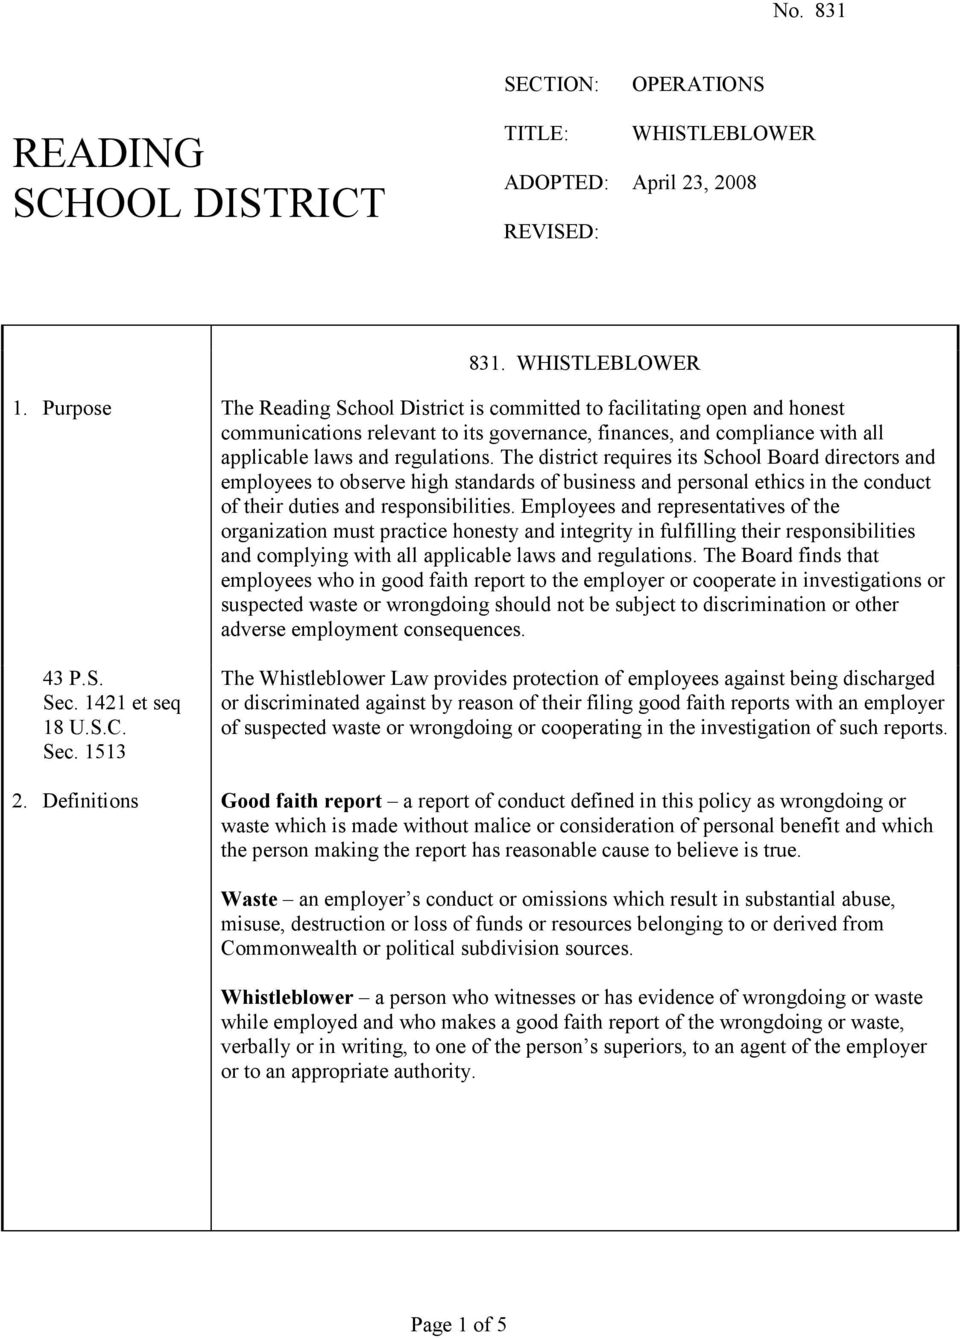 The district requires its School Board directors and employees to observe high standards of business and personal ethics in the conduct of their duties and responsibilities.